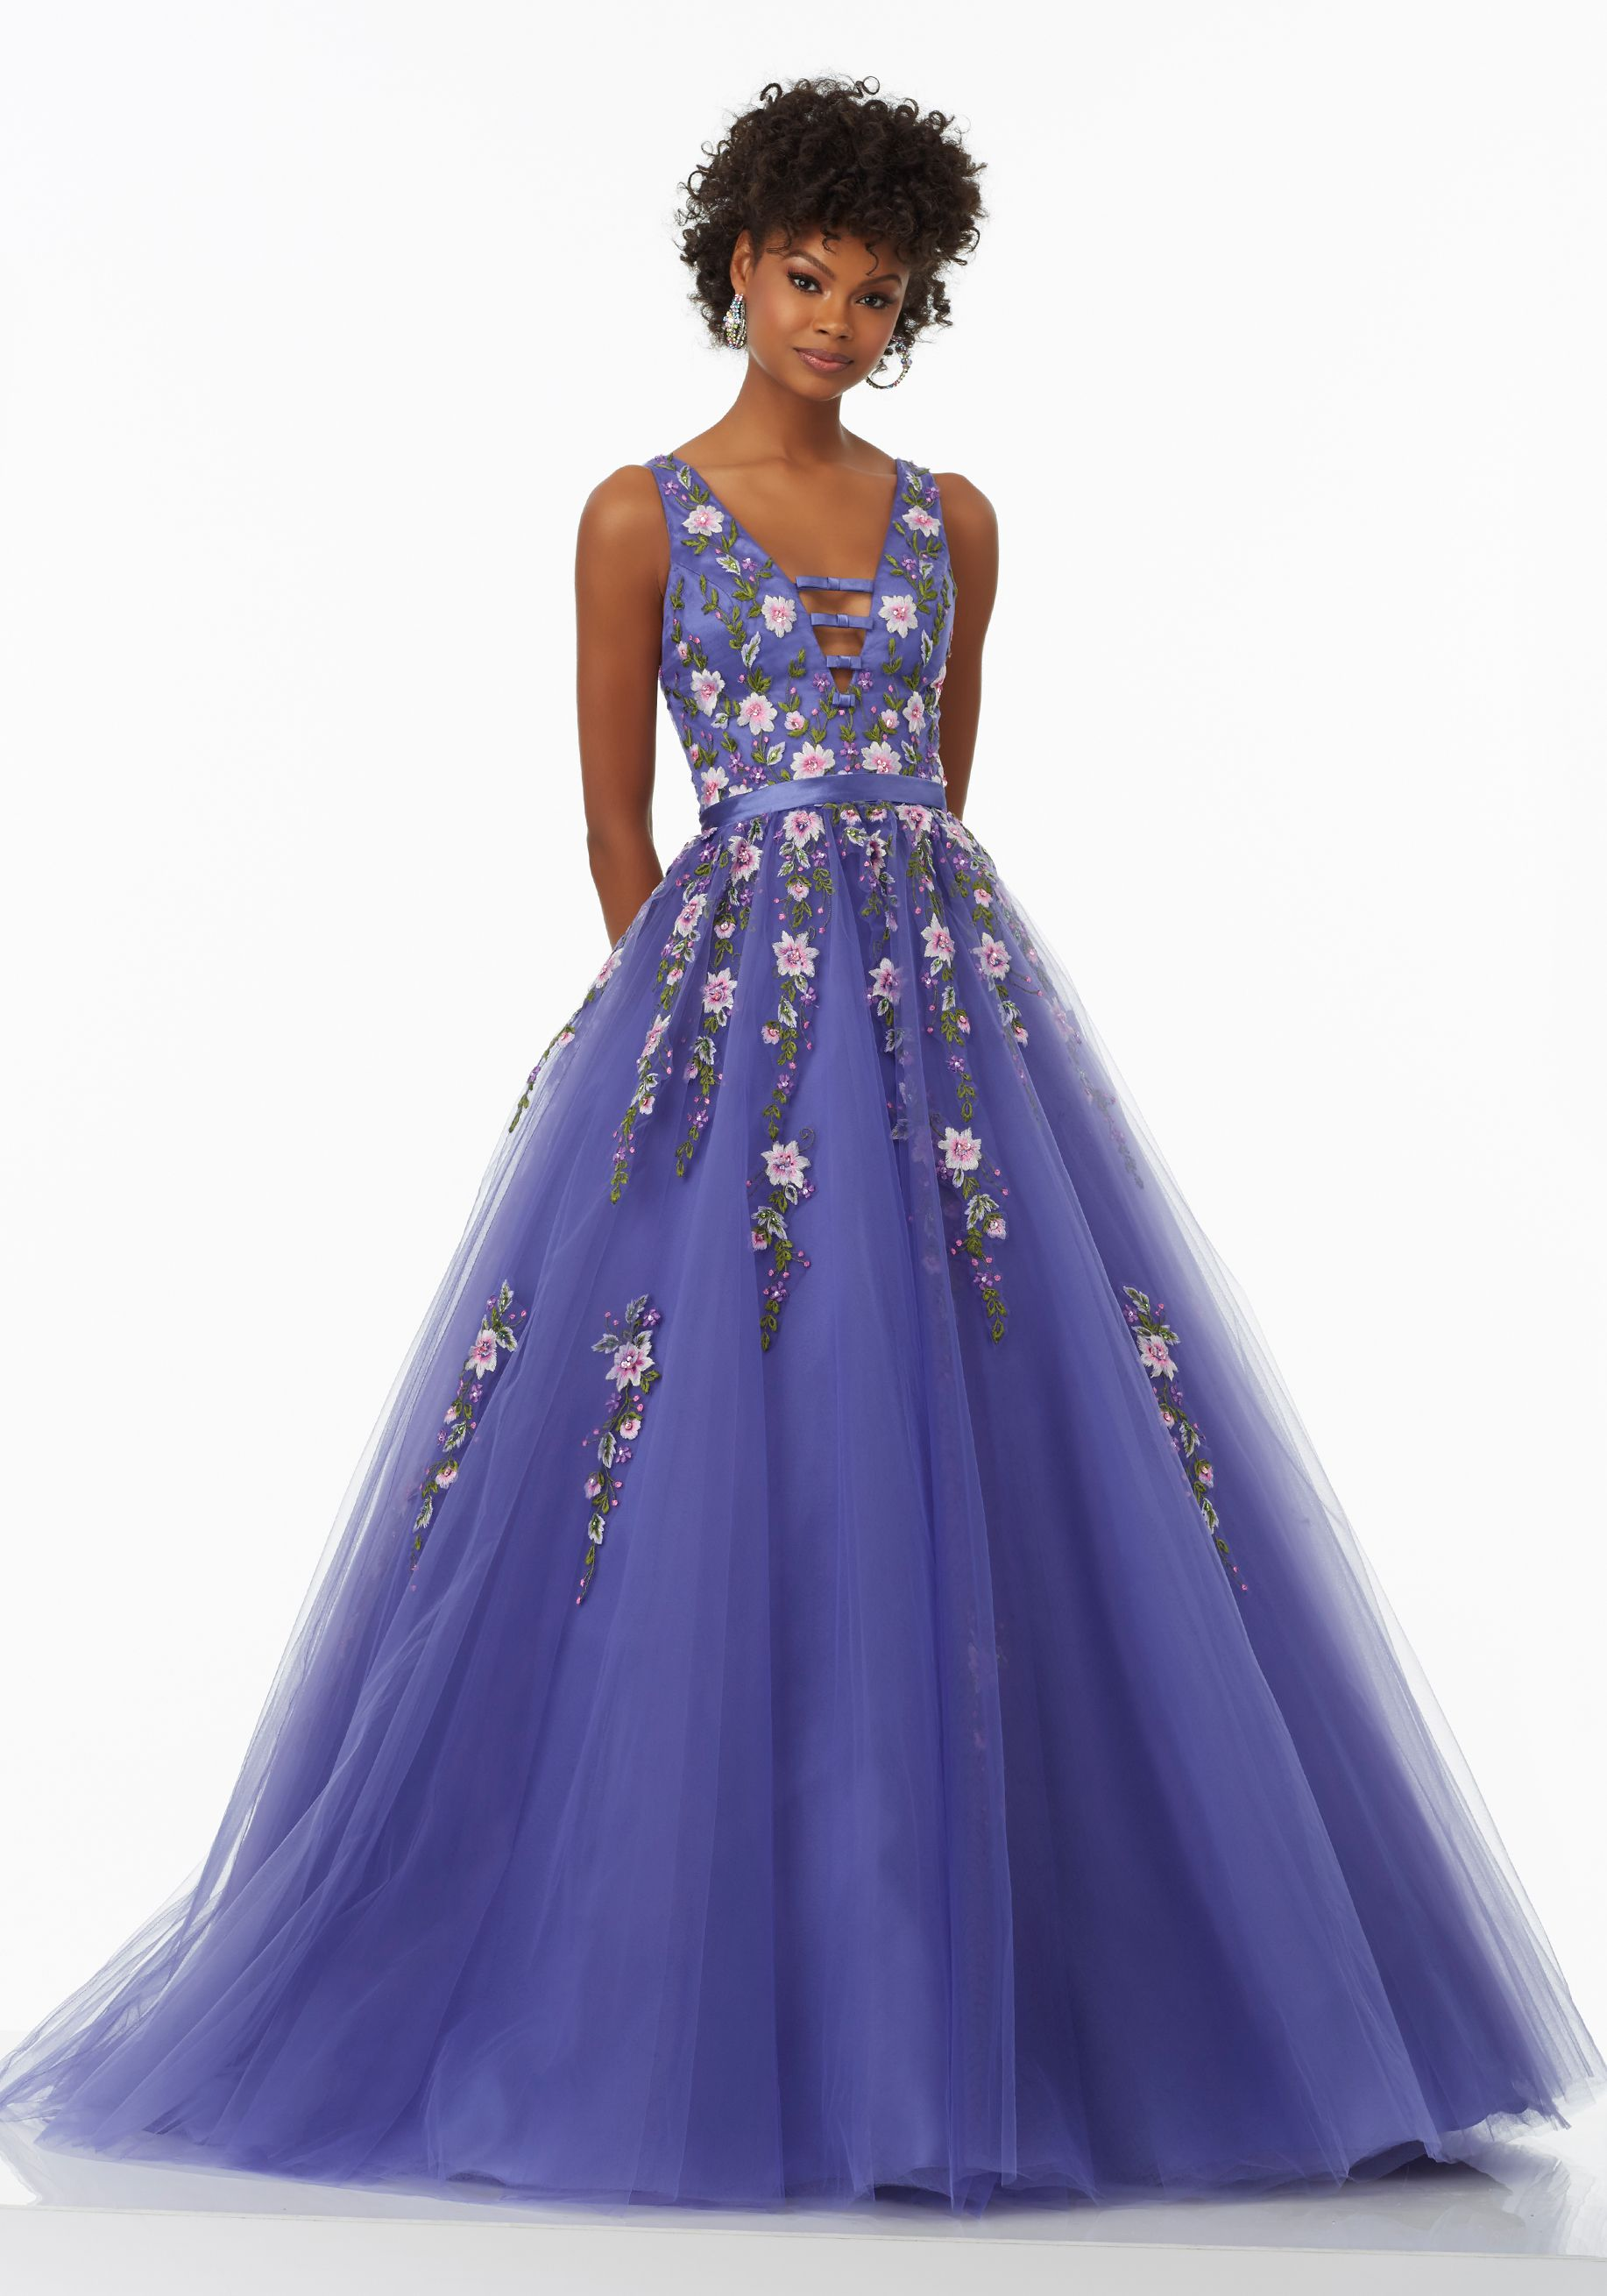 Embroidered ball gown prom dress step inside my fashion eye